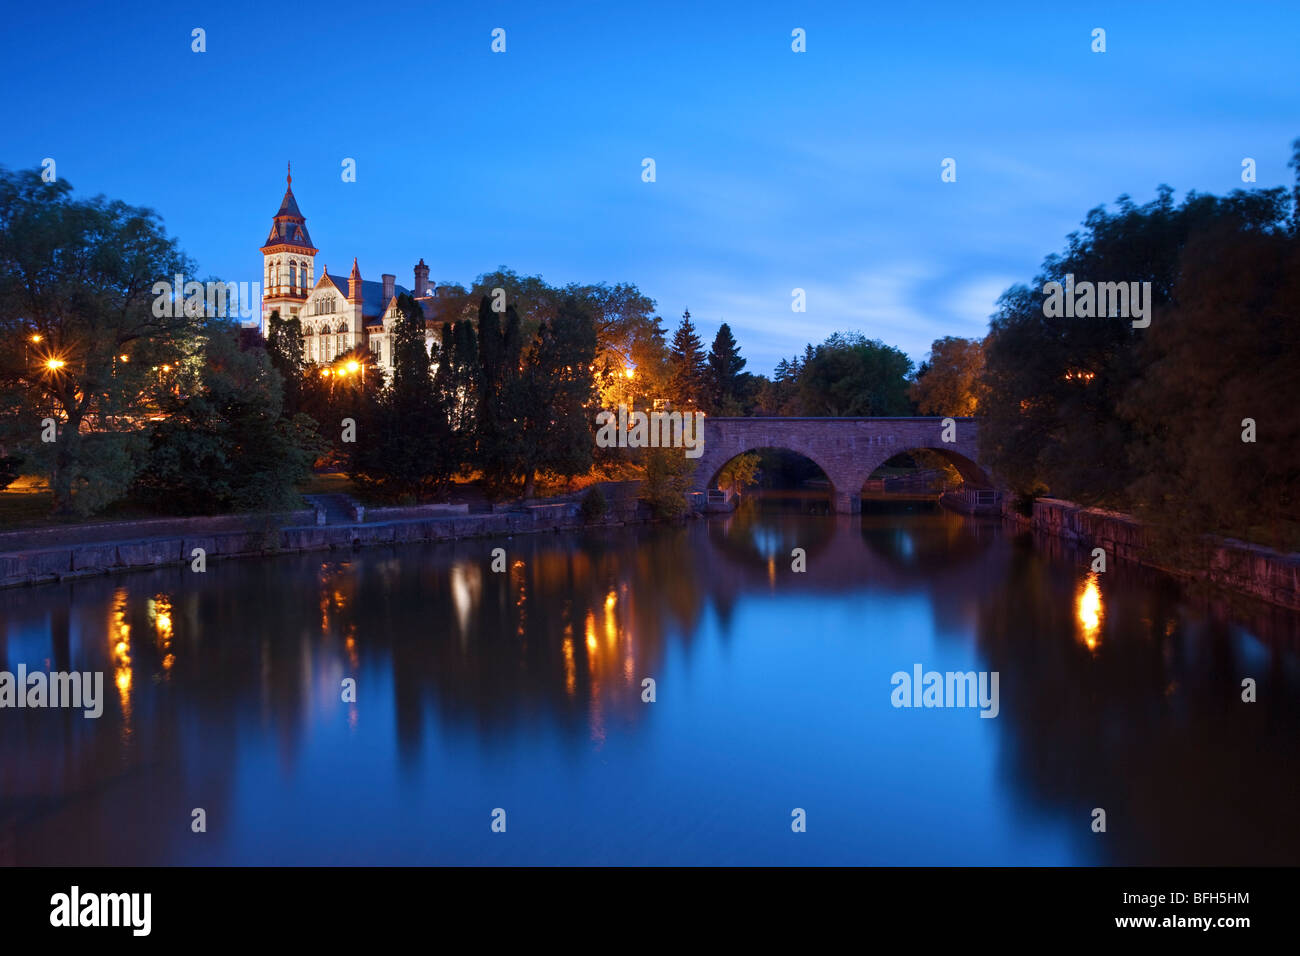 A night view of the Stratford courthouse in Stratford Ontario with the Avon river in the foreground - Stock Image